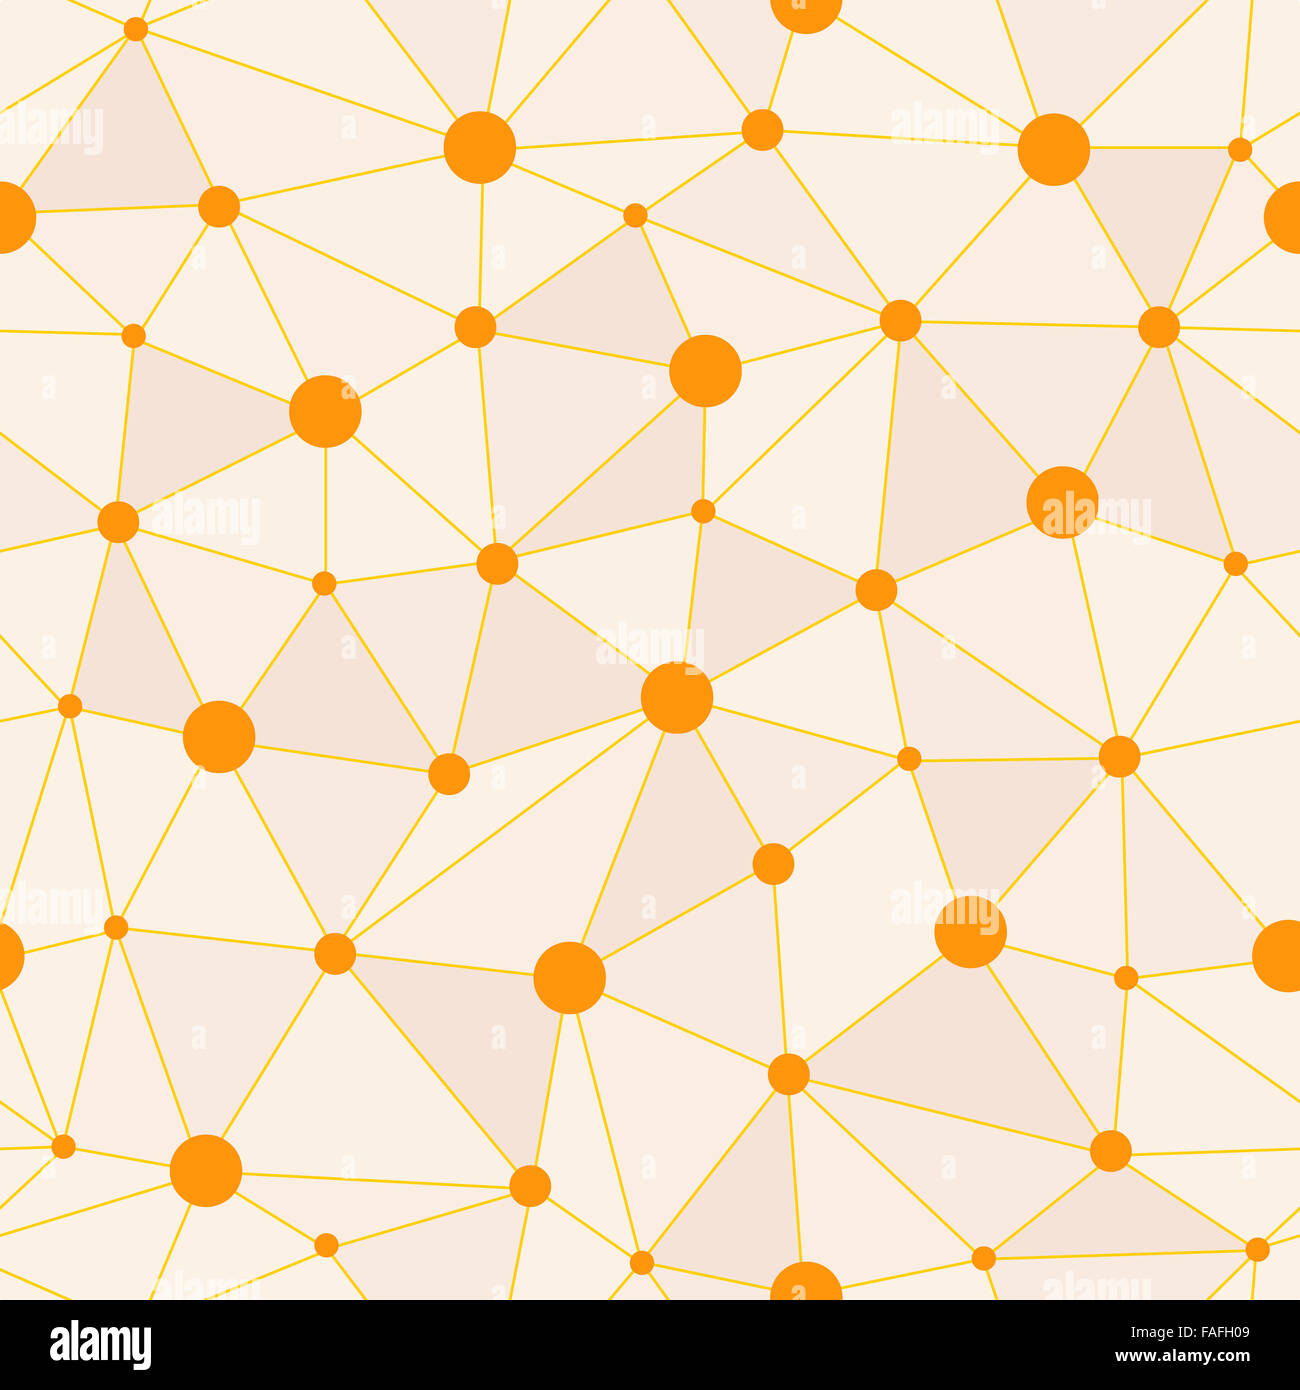 Atomic Background with Interconnected Yellow Dots - Stock Image